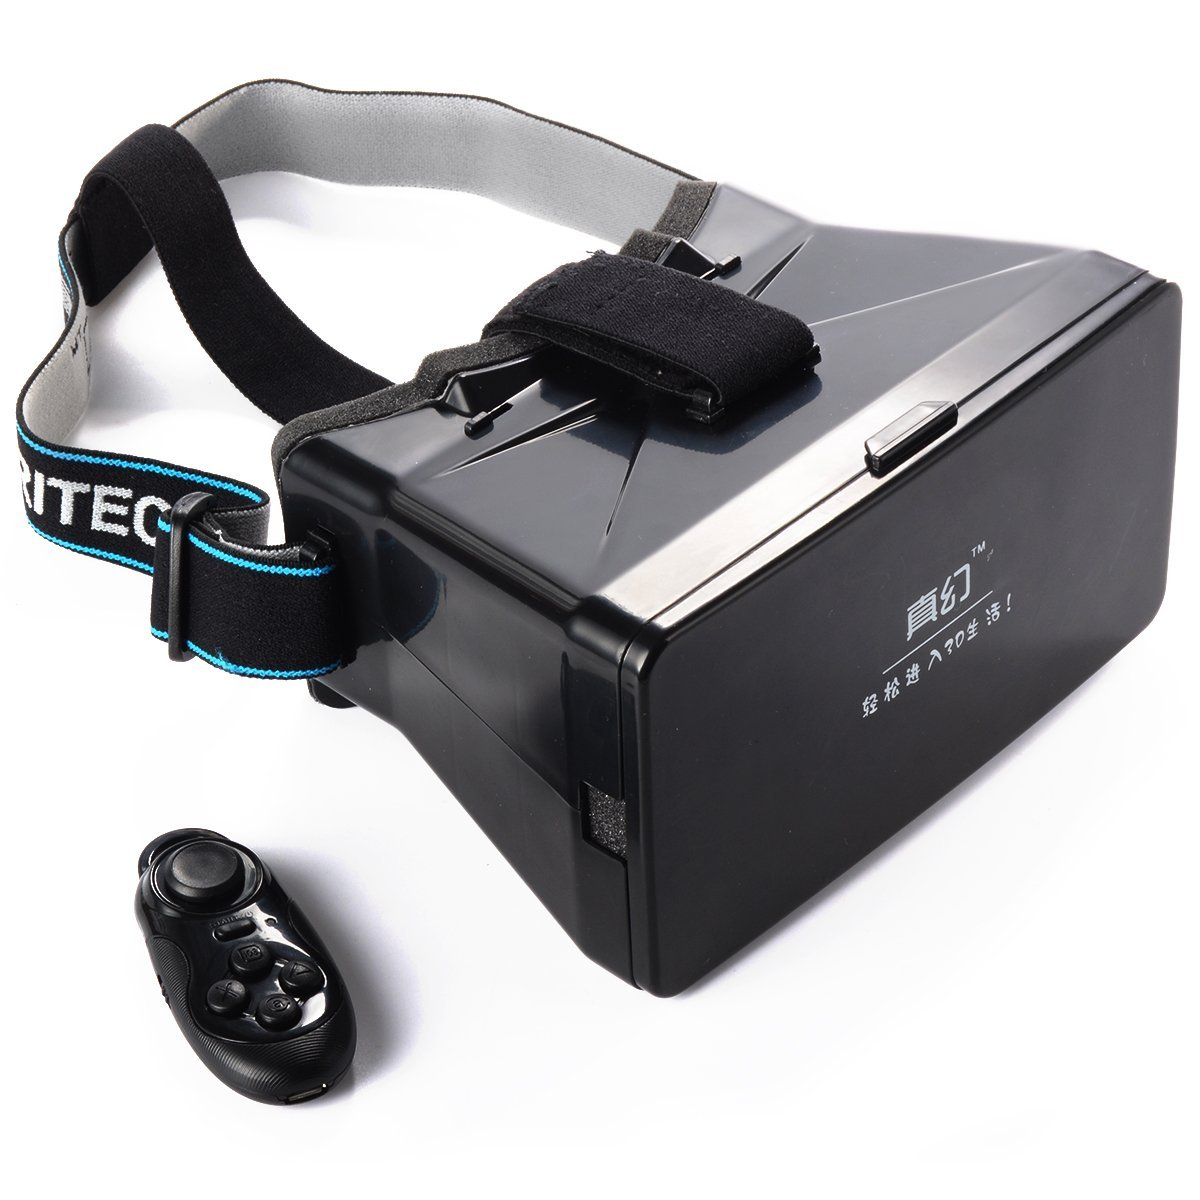 XCSOURCE Head Mount Plastic VR Virtual Reality Glasses For 3D Movies Games 3.5-6 Phone AC261